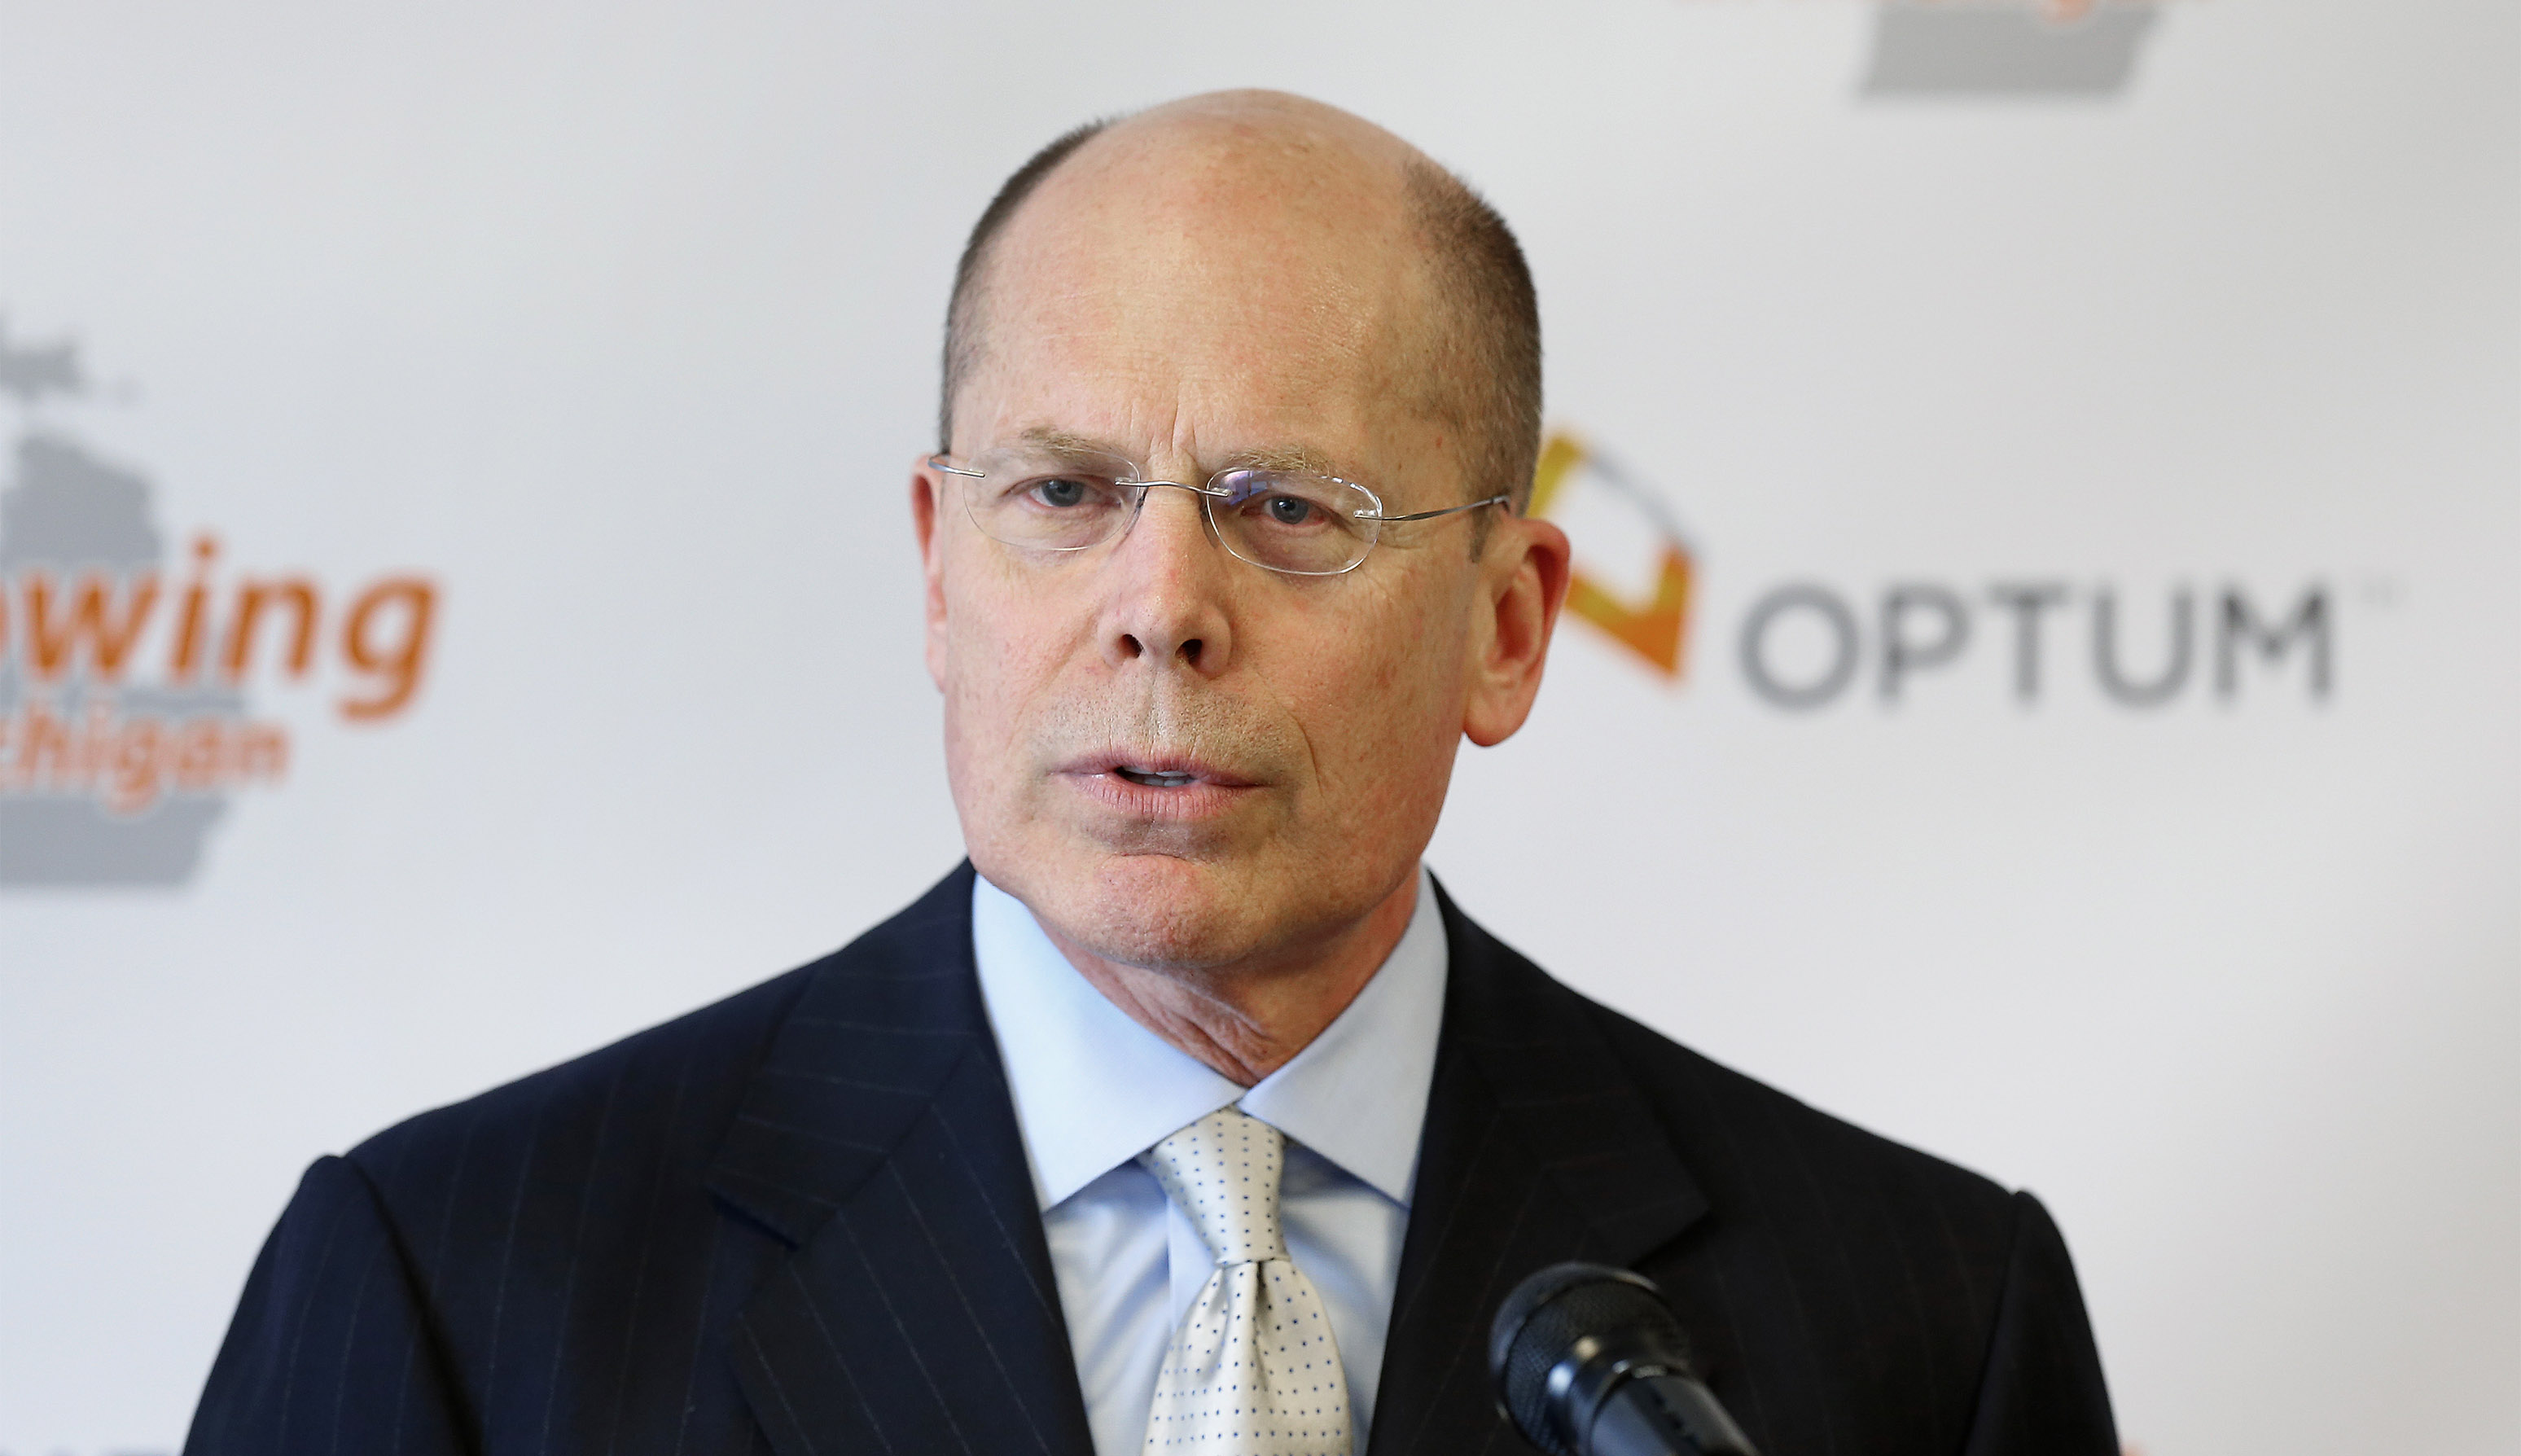 Stephen Hemsley, president and CEO of Minnesota-based UnitedHealth Group, announces 75 jobs are being created within the company's subsidiary, Optum, which works in health care services and technology support, in Southfield, Mich., Tuesday, April 29, 2014. (AP Photo)